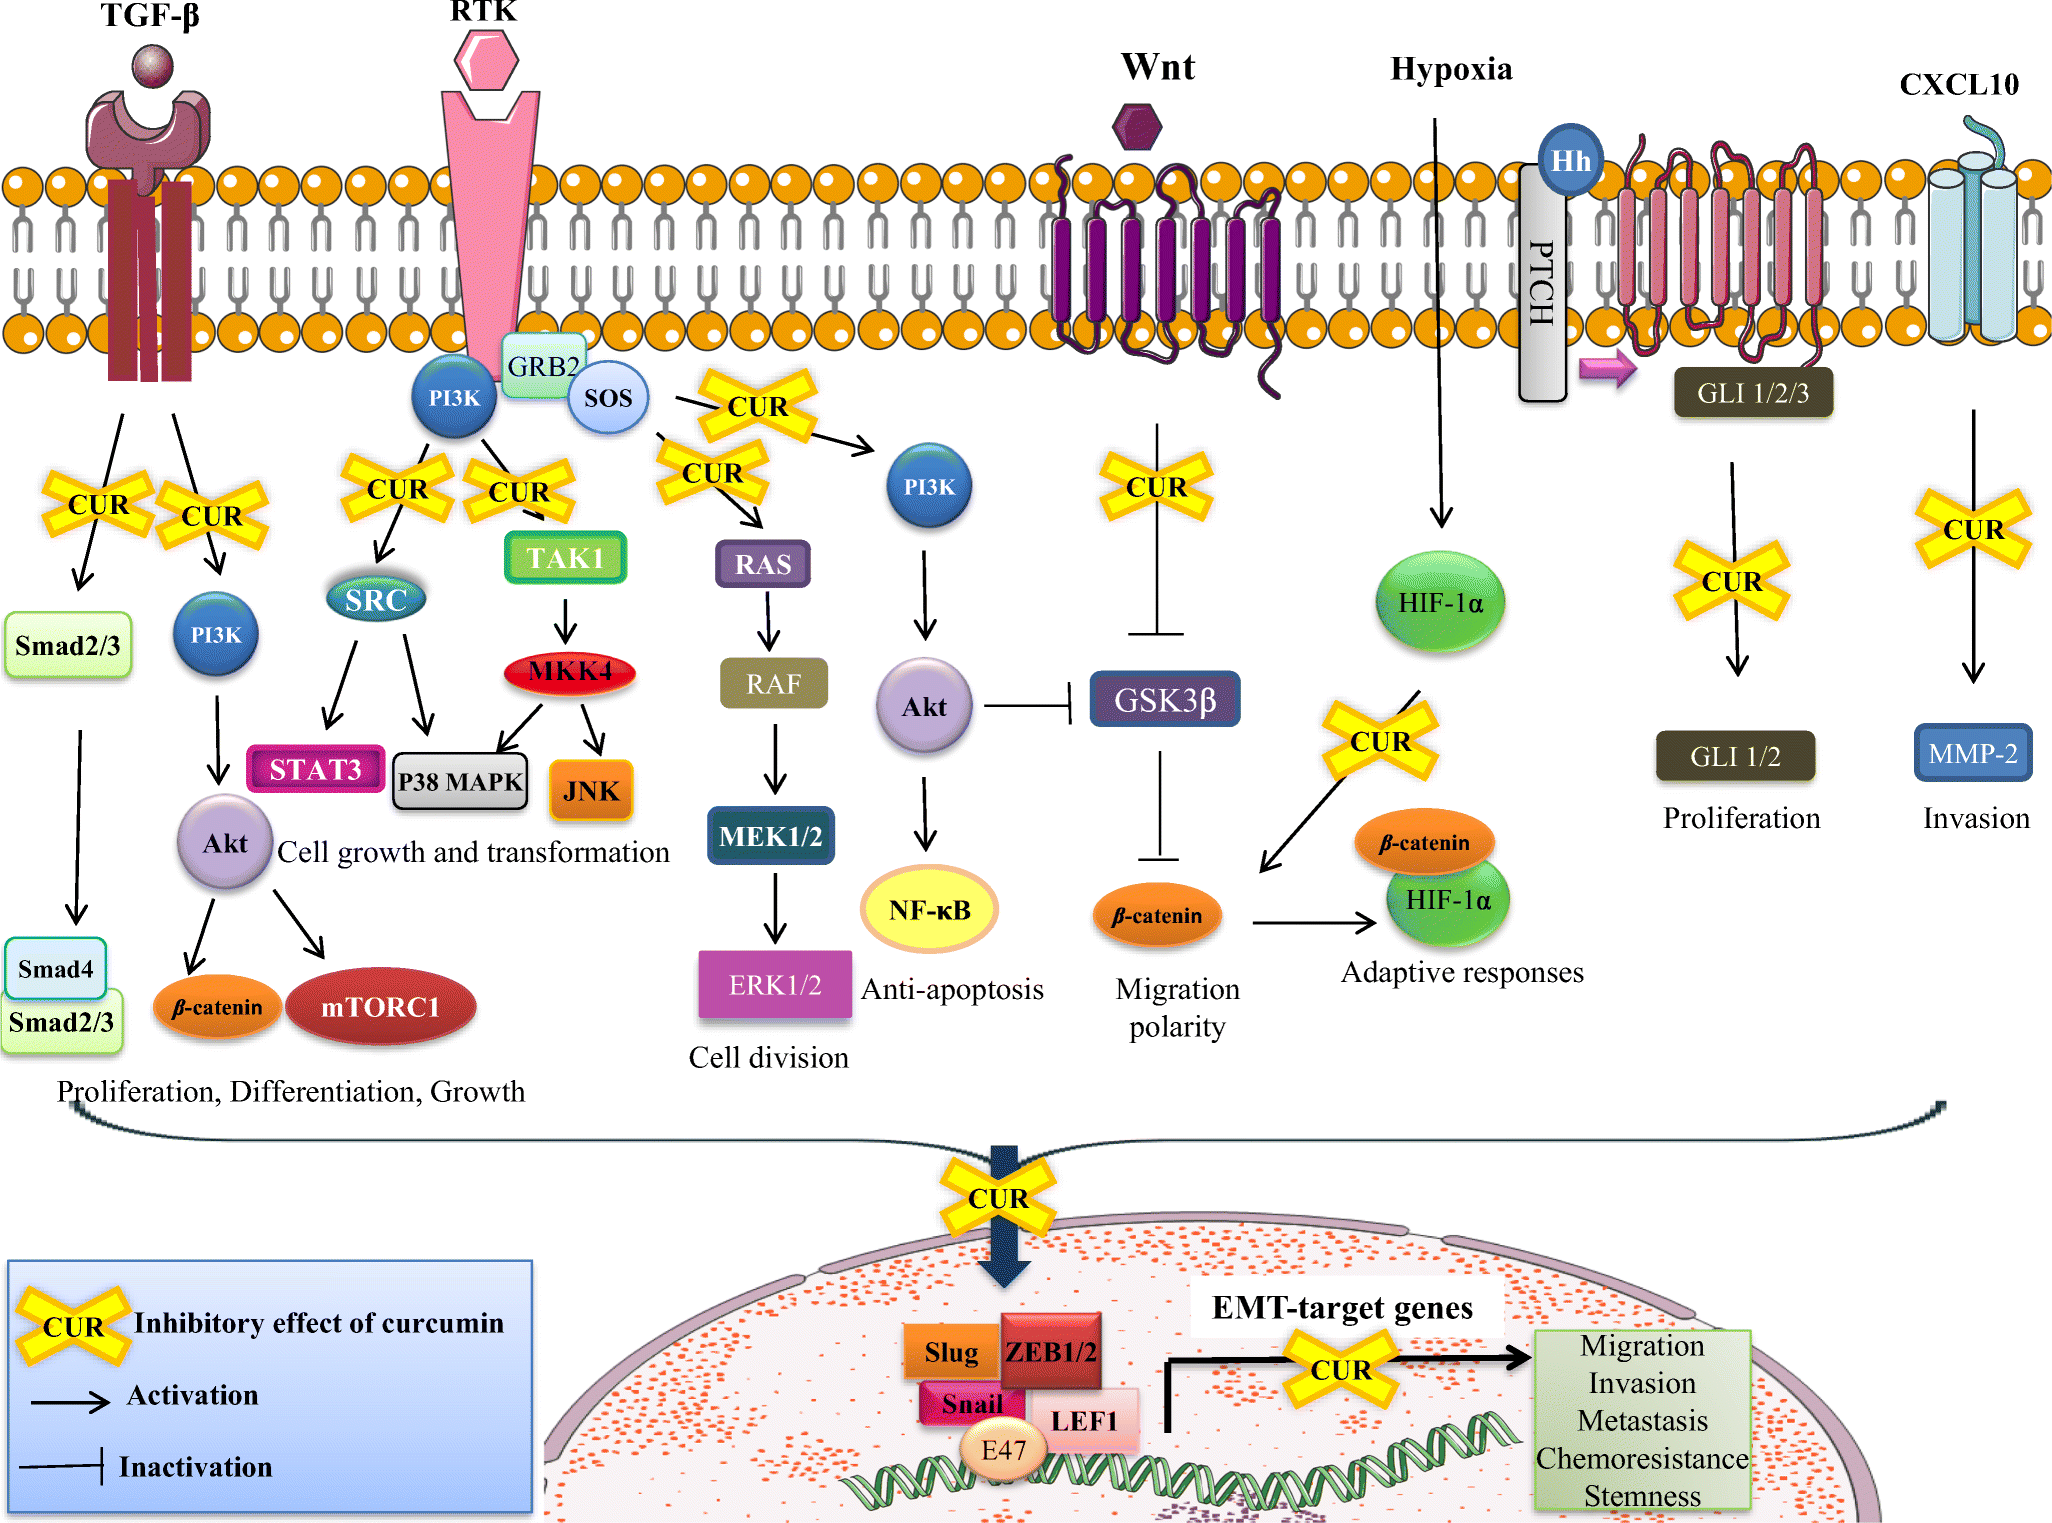 Curcumin: a potent agent to reverse epithelial-to-mesenchymal